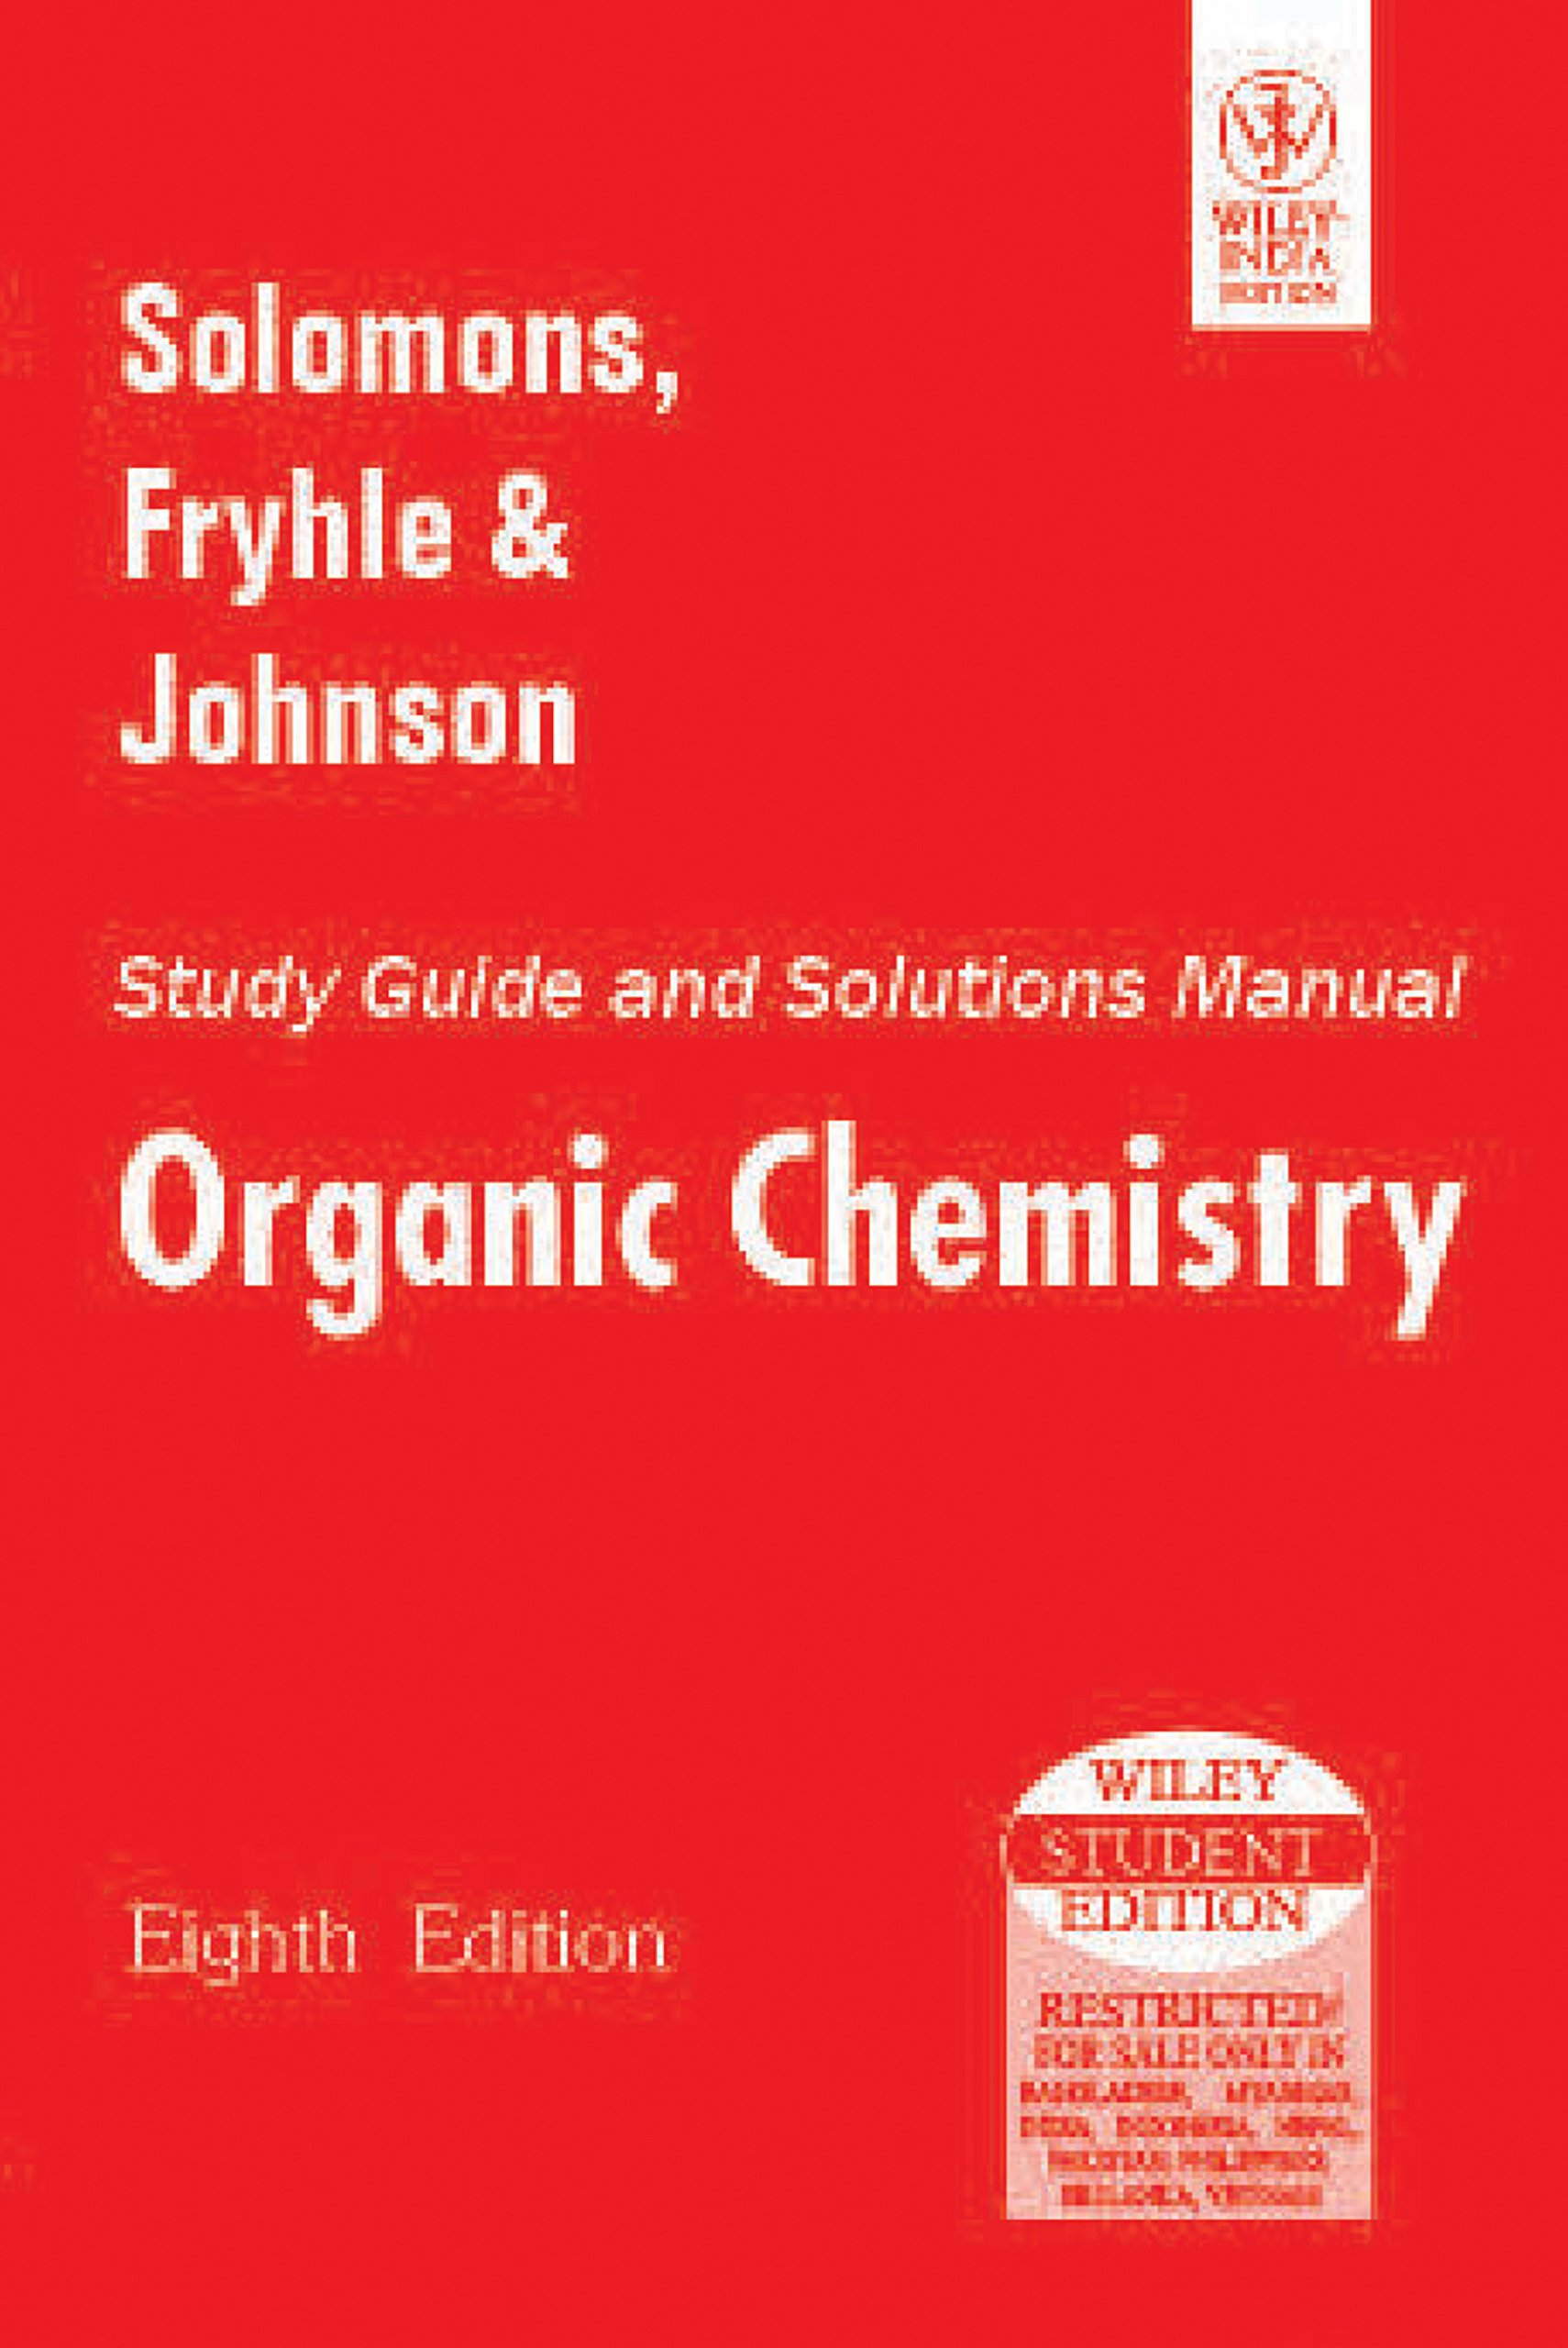 buy organic chemistry study guide and solutions manual book online rh amazon in Organic Chemistry Textbook solomon organic chemistry 11th edition solution manual